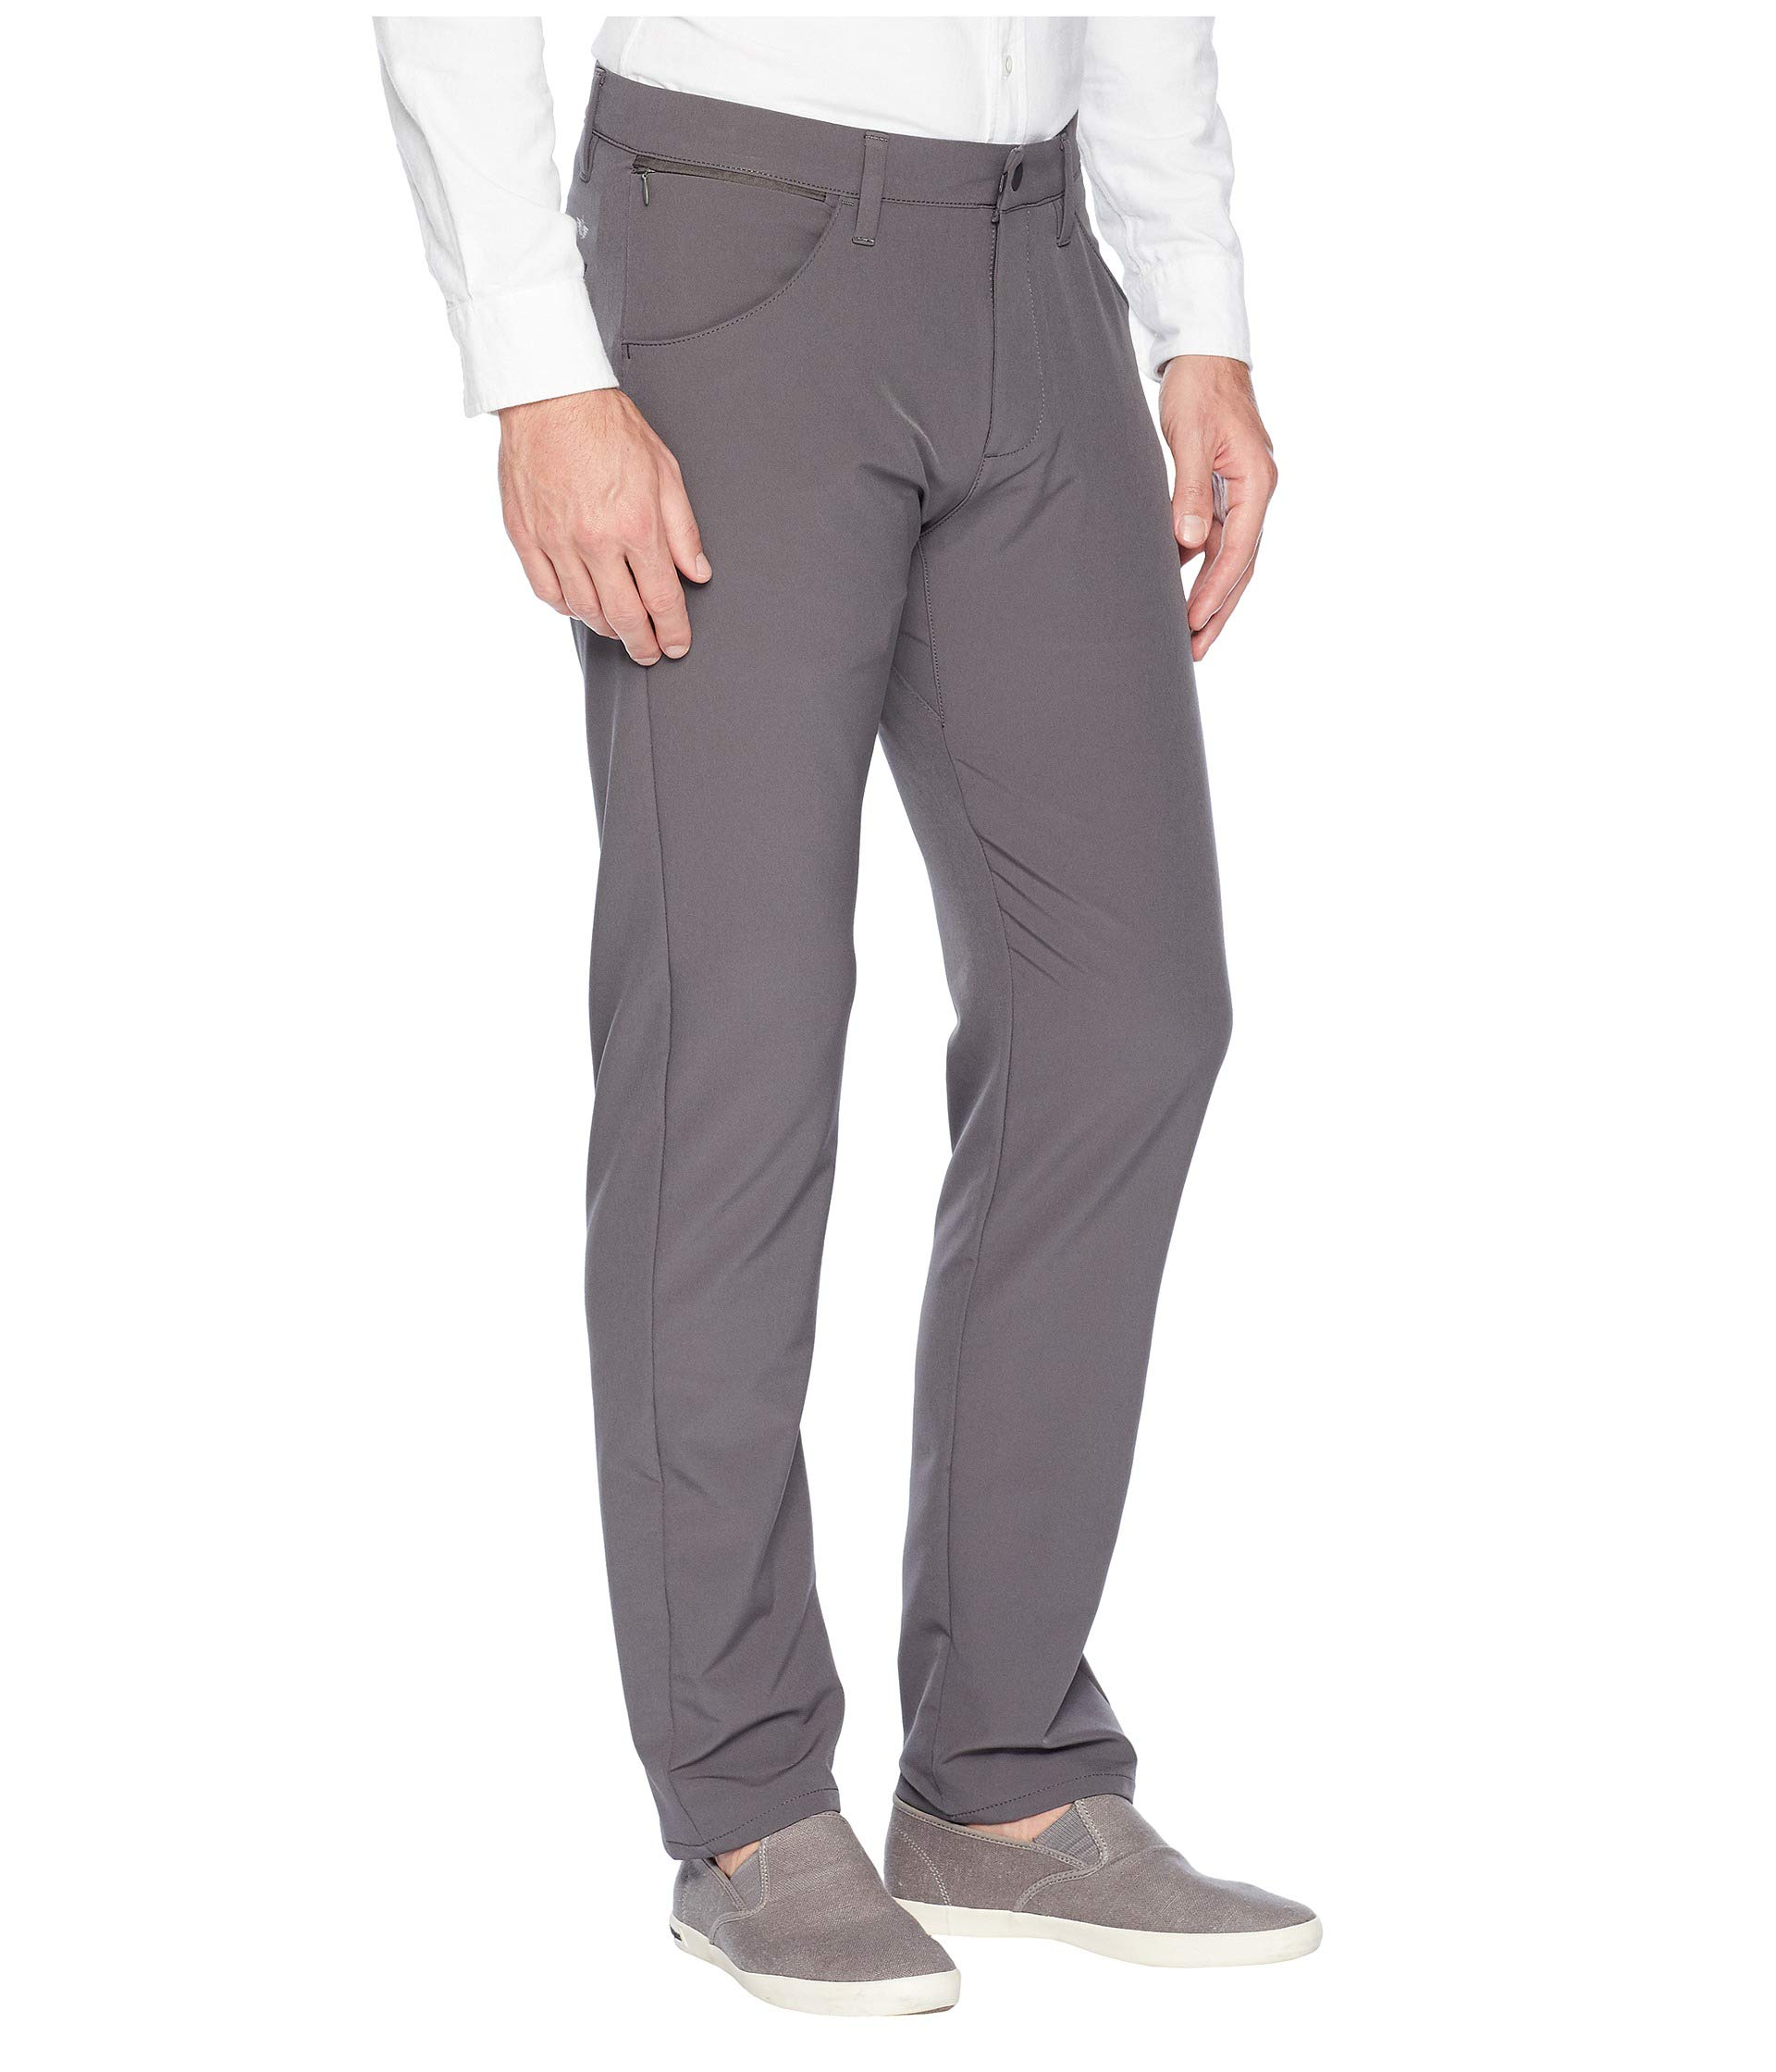 Smart Storm 360 Tapered Dockers Slim Pants Khaki Tech qOEtH